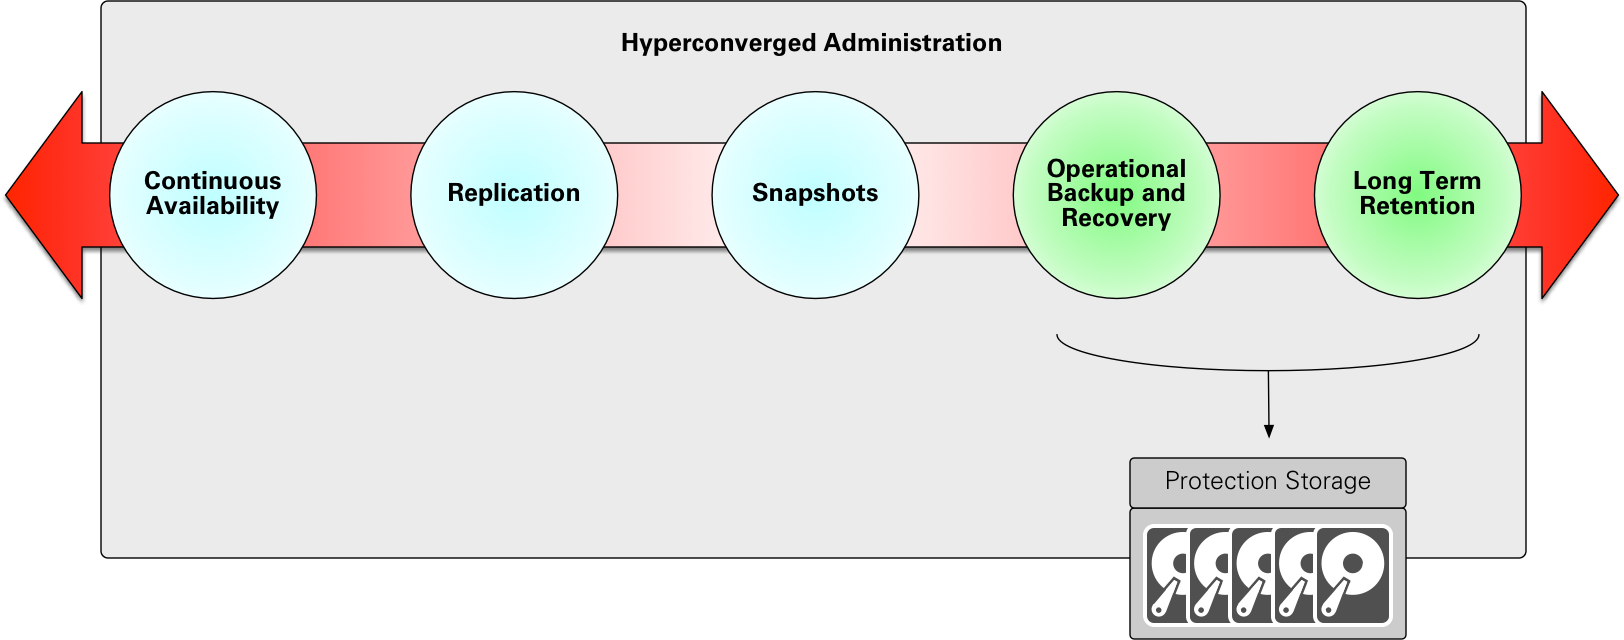 Hyperconverged Administration